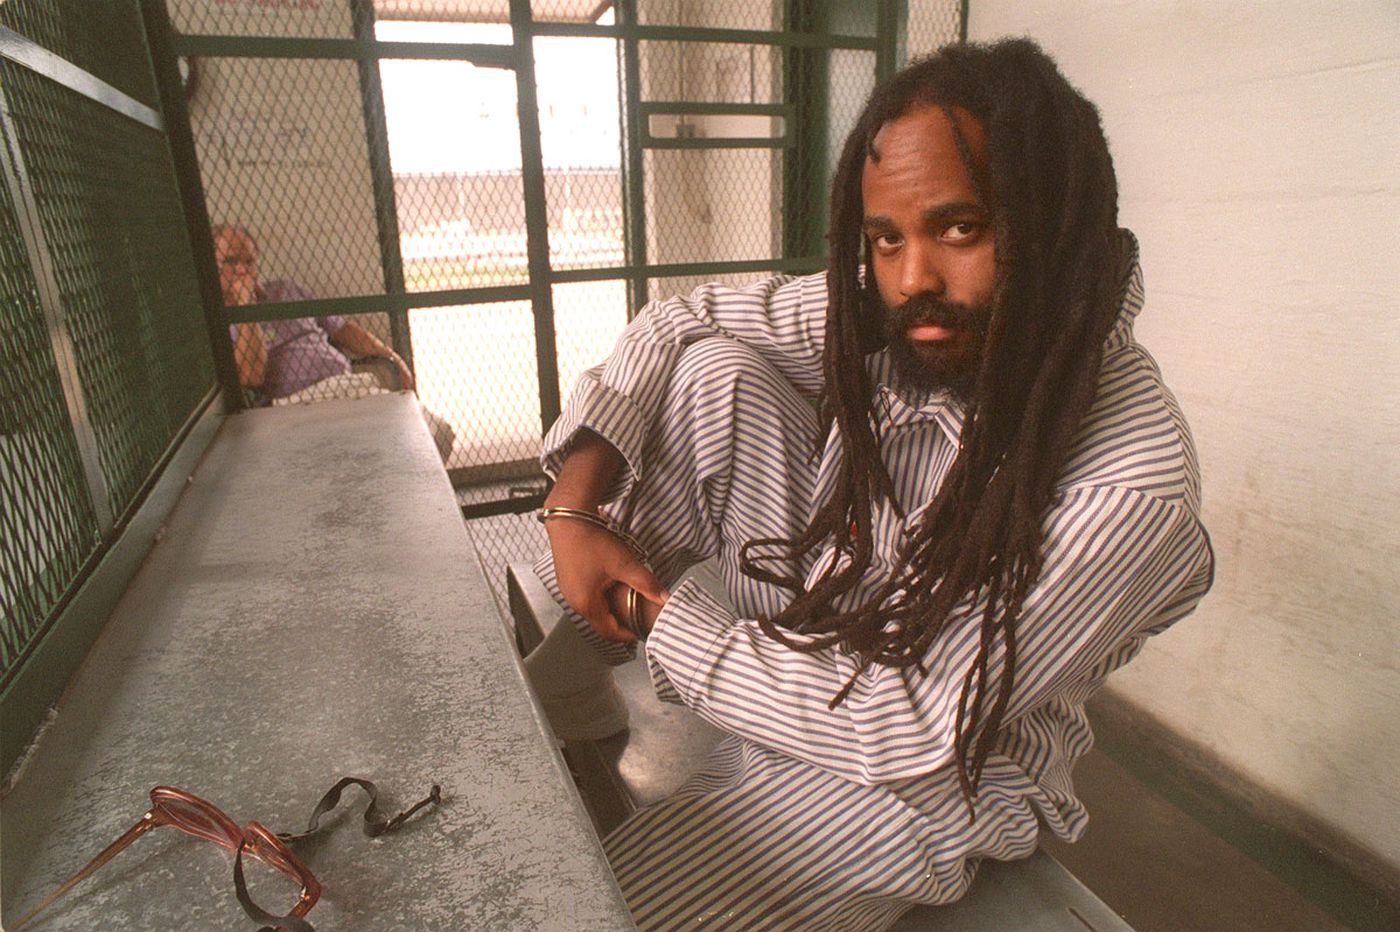 Federal judge orders state to provide Mumia Abu-Jamal with hepatitis C treatment